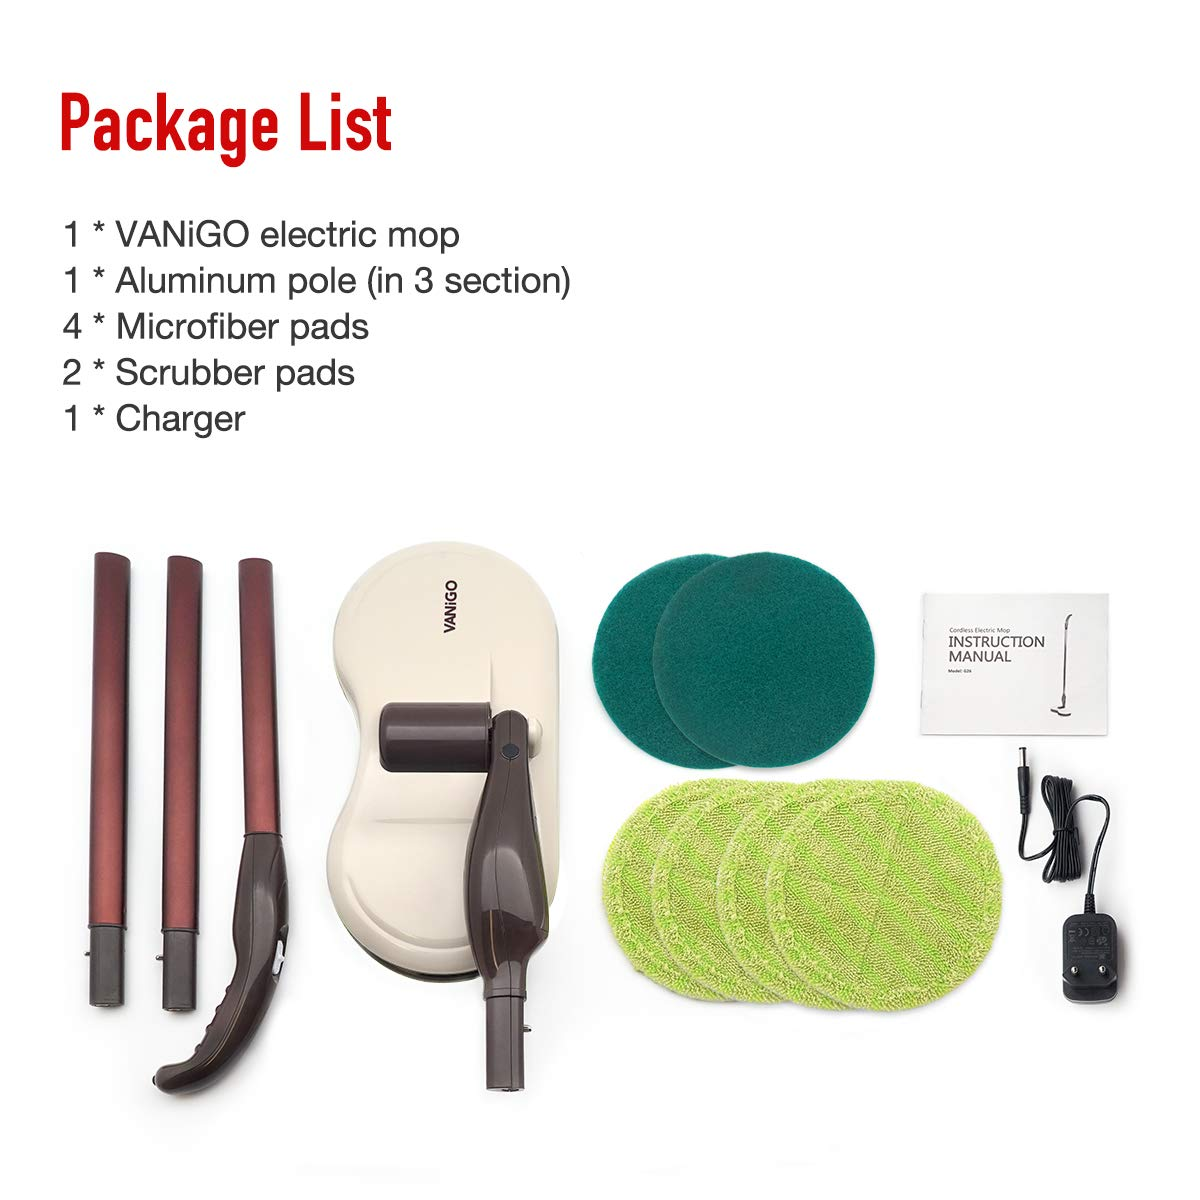 Electric Spin Mop, Cordless Floor Sweeper Cleaner with Dual Spinning Heads and Replaceable Pads for Tile Wood Hard Floor Window by VANiGO (Image #8)